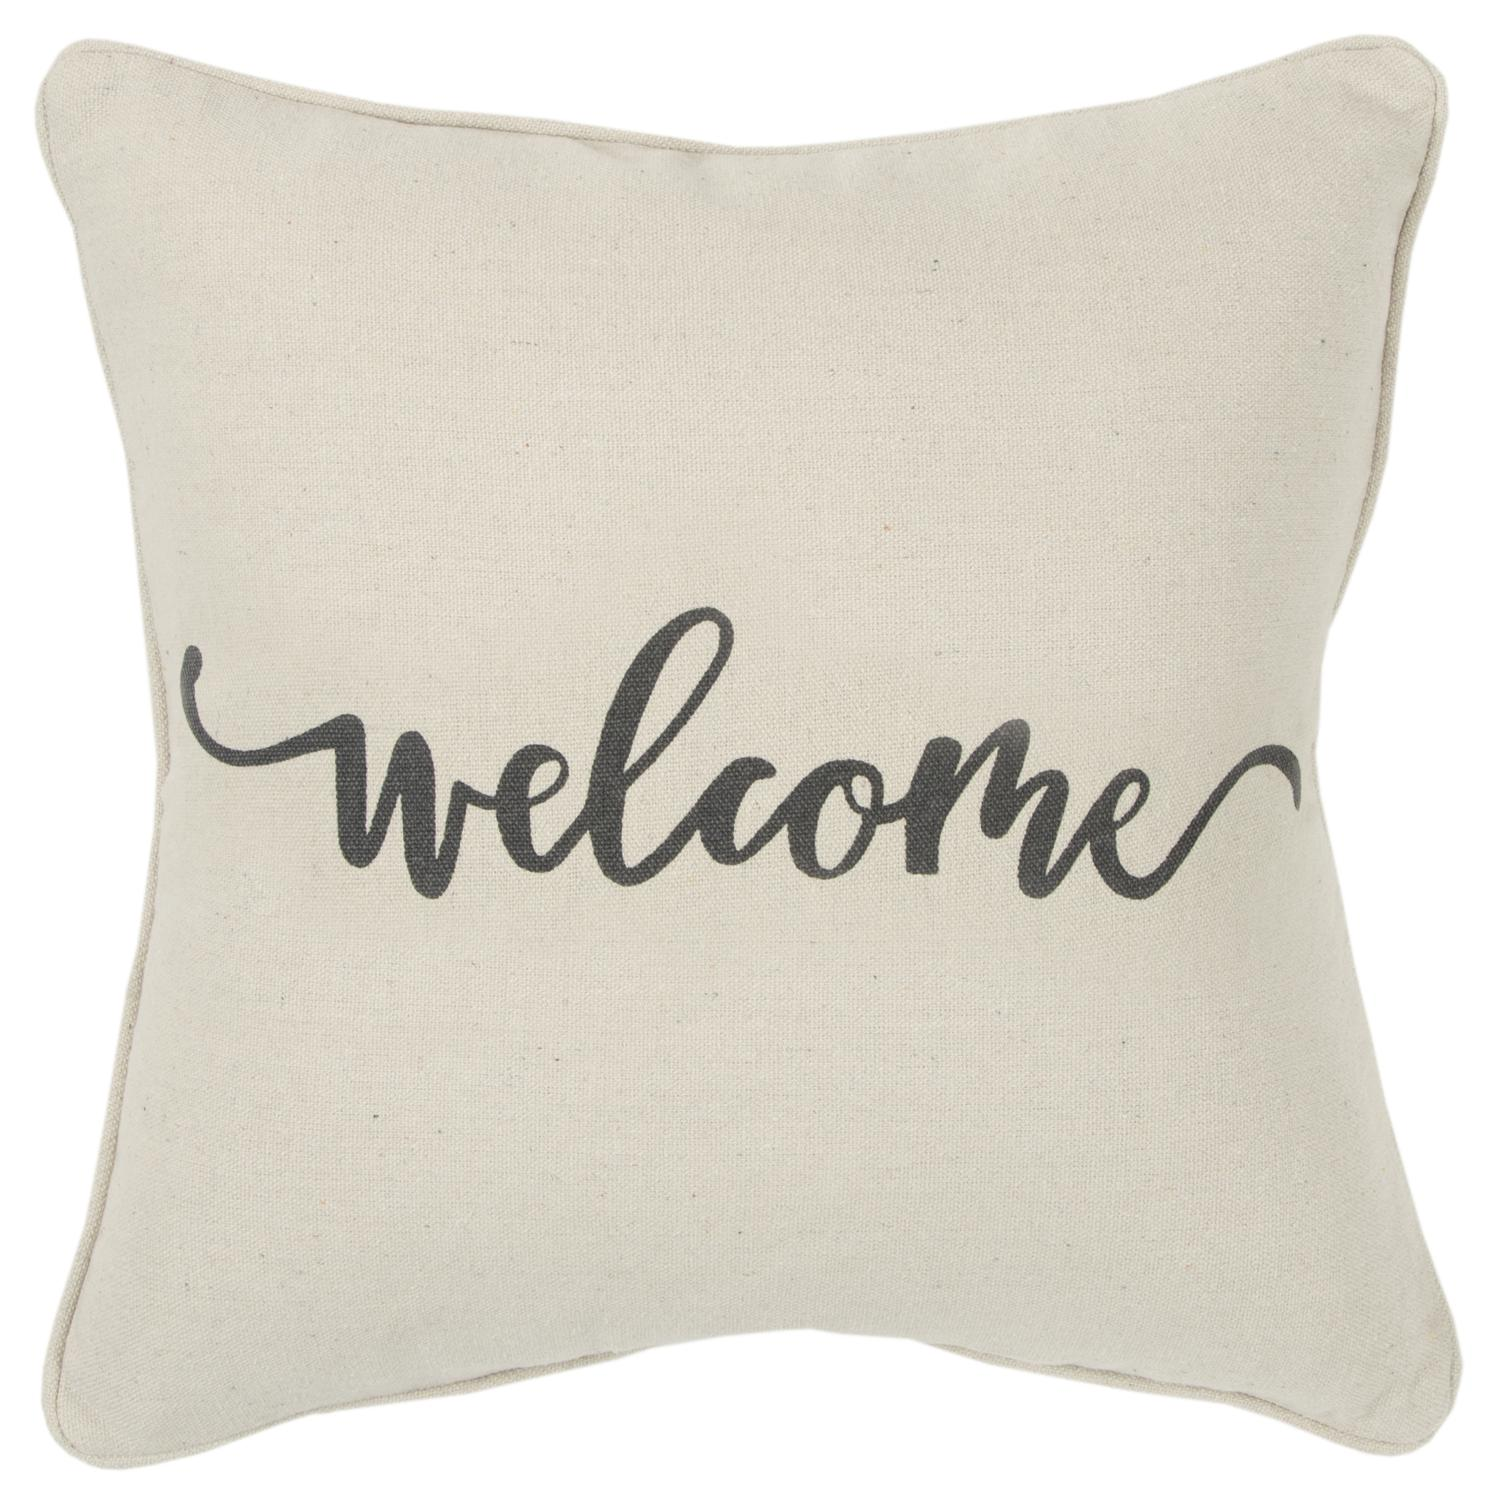 """Rizzy Home Holiday """"Welcome"""" Poly Filled Decorative Throw Pillow, 20"""" x 20"""", Natural"""